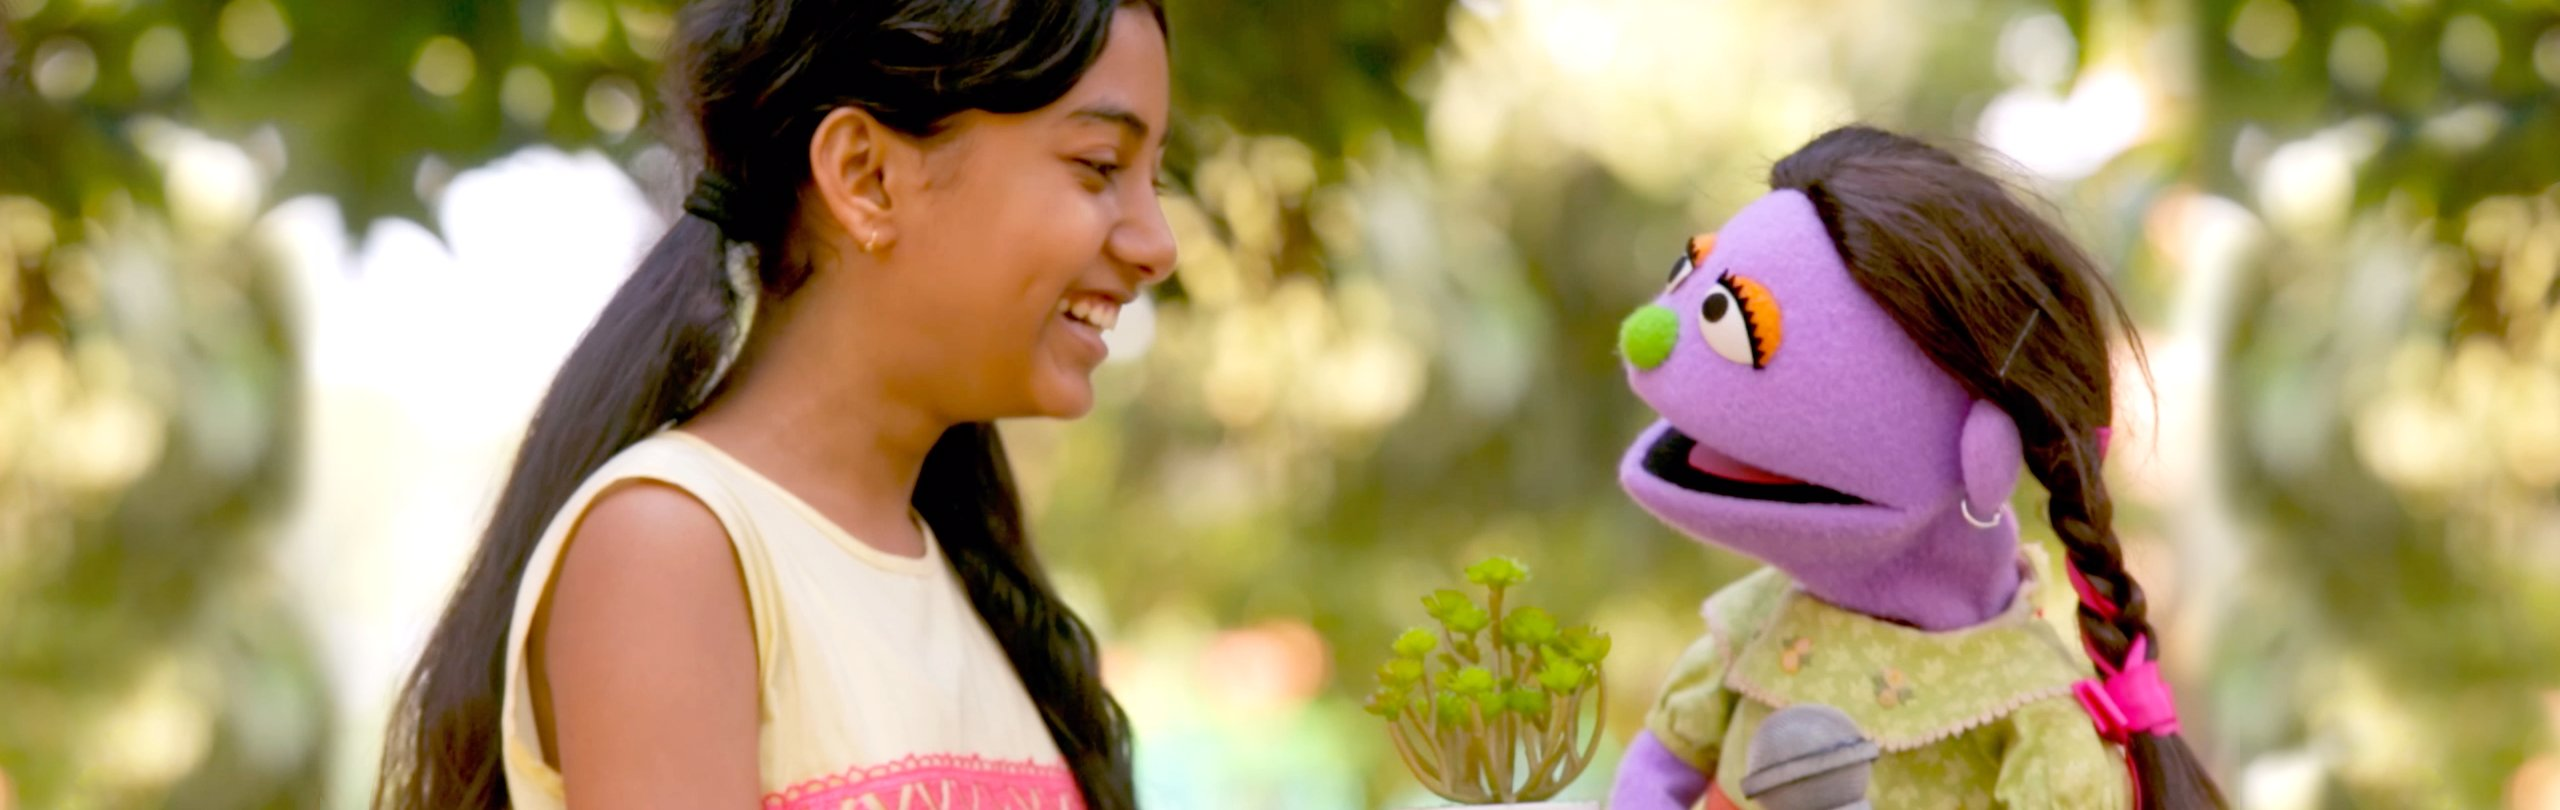 A muppet and a young girl smile and laugh together